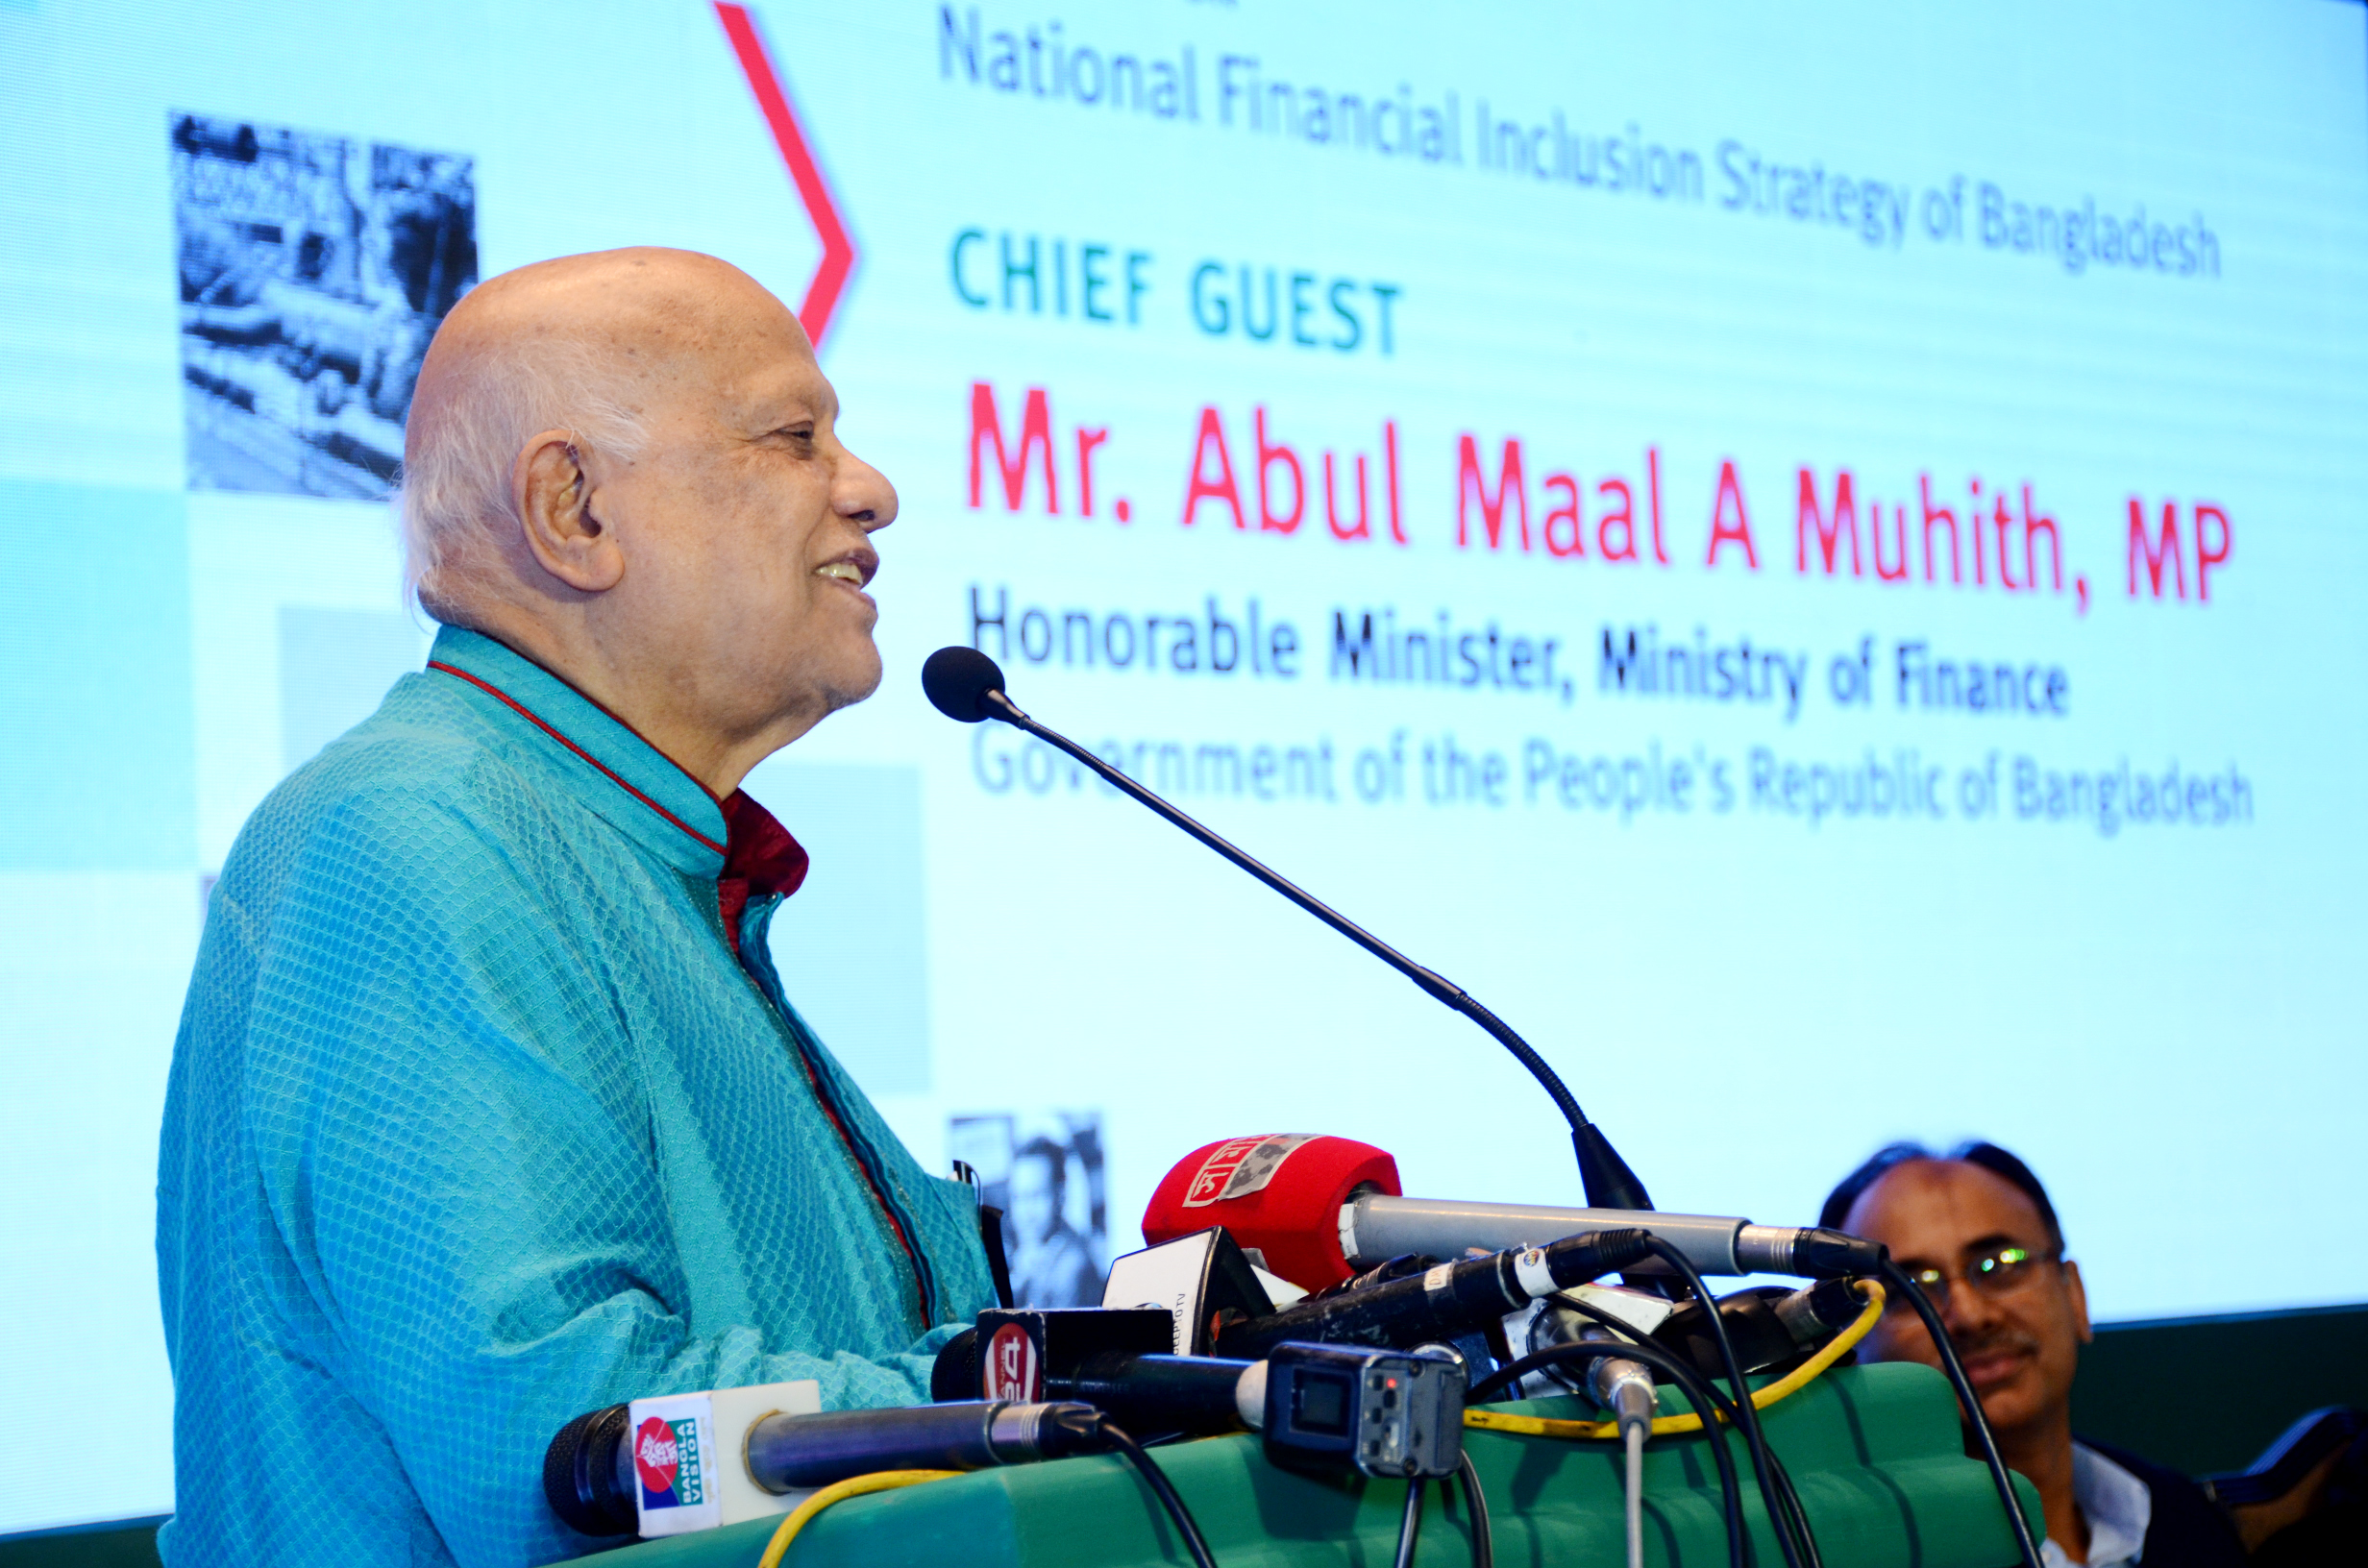 """Mr. A.M.A Muhith, Honorable Minister, Ministry of Finance, Government of Bangladesh speaking during the event. In his speech, Mr. Muhith stated """"There are less than 101,000 banking institutions in a country of 160 million people, which is not enough."""""""